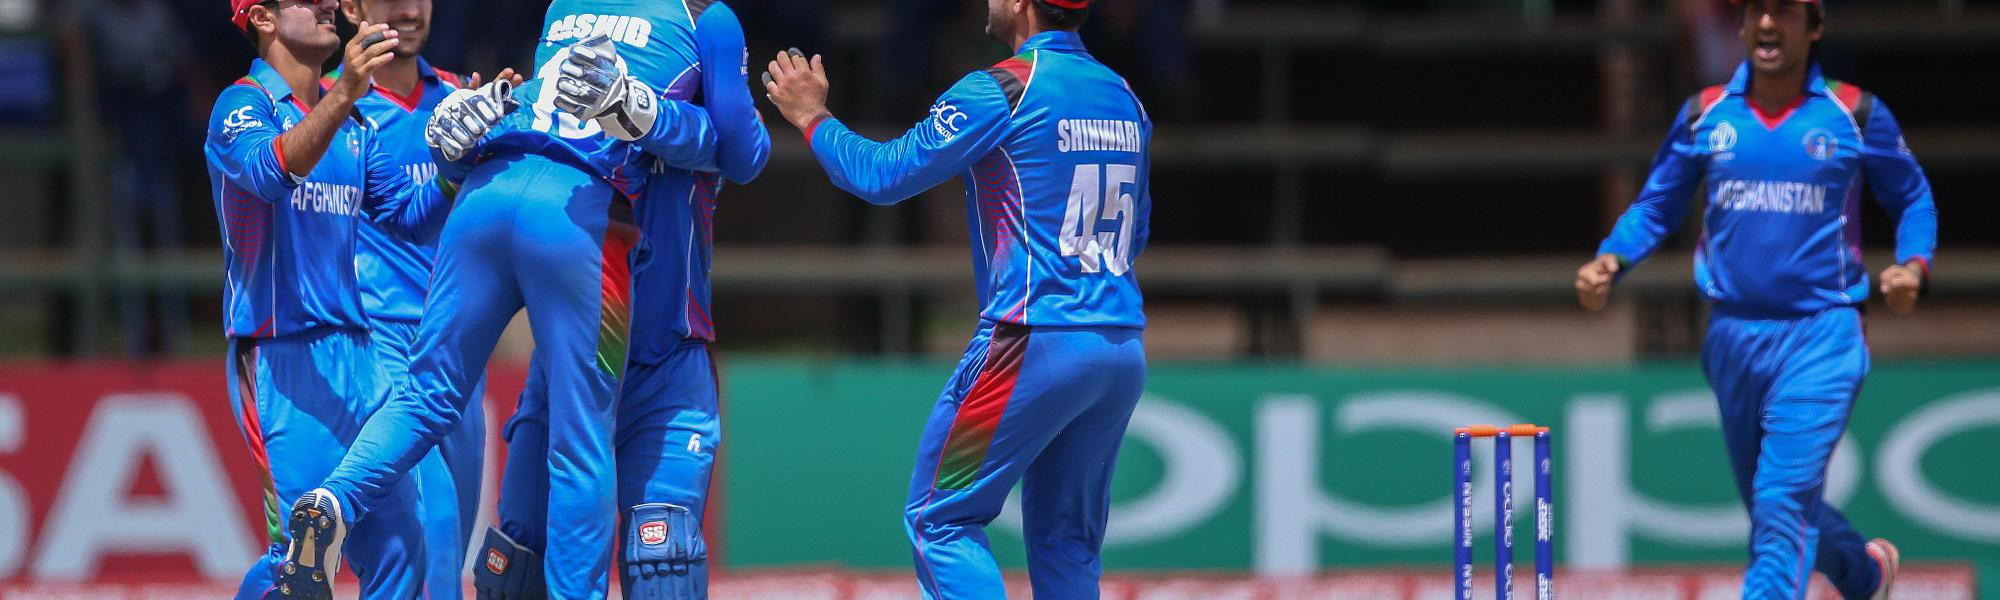 When he trapped Shai Hope lbw, Rashid Khan became the quickest to 100 wickets in ODIs